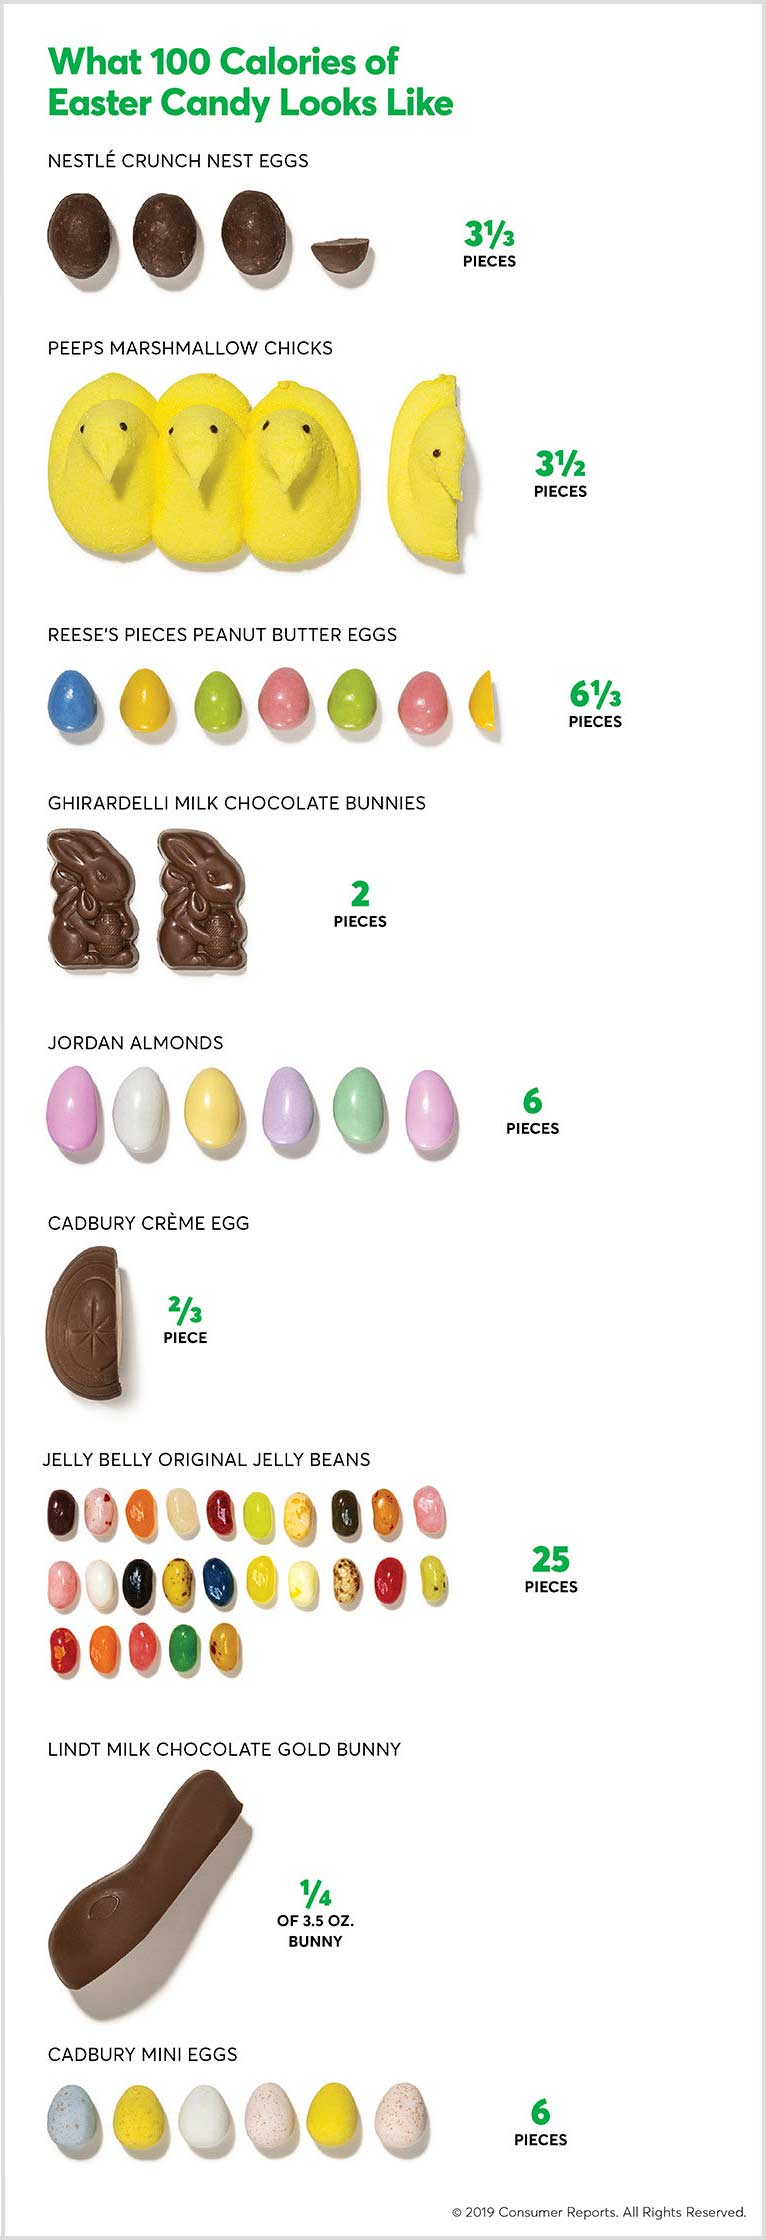 What 100 calories of Easter candy looks like.